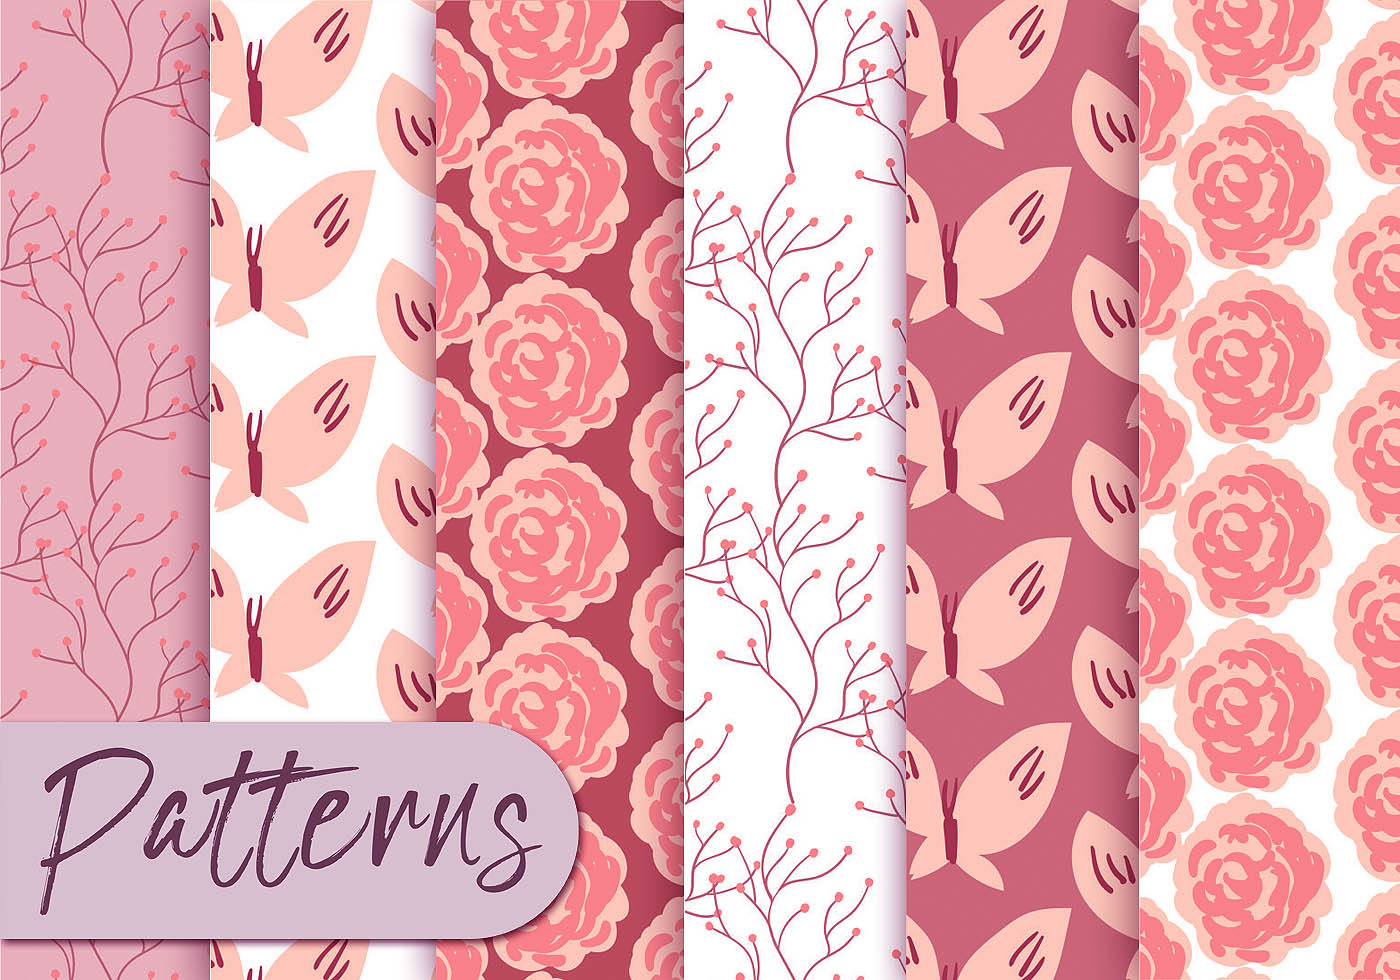 Cute Wallpapers Green Mint Soft Pink Roses Pattern Set Download Free Vector Art